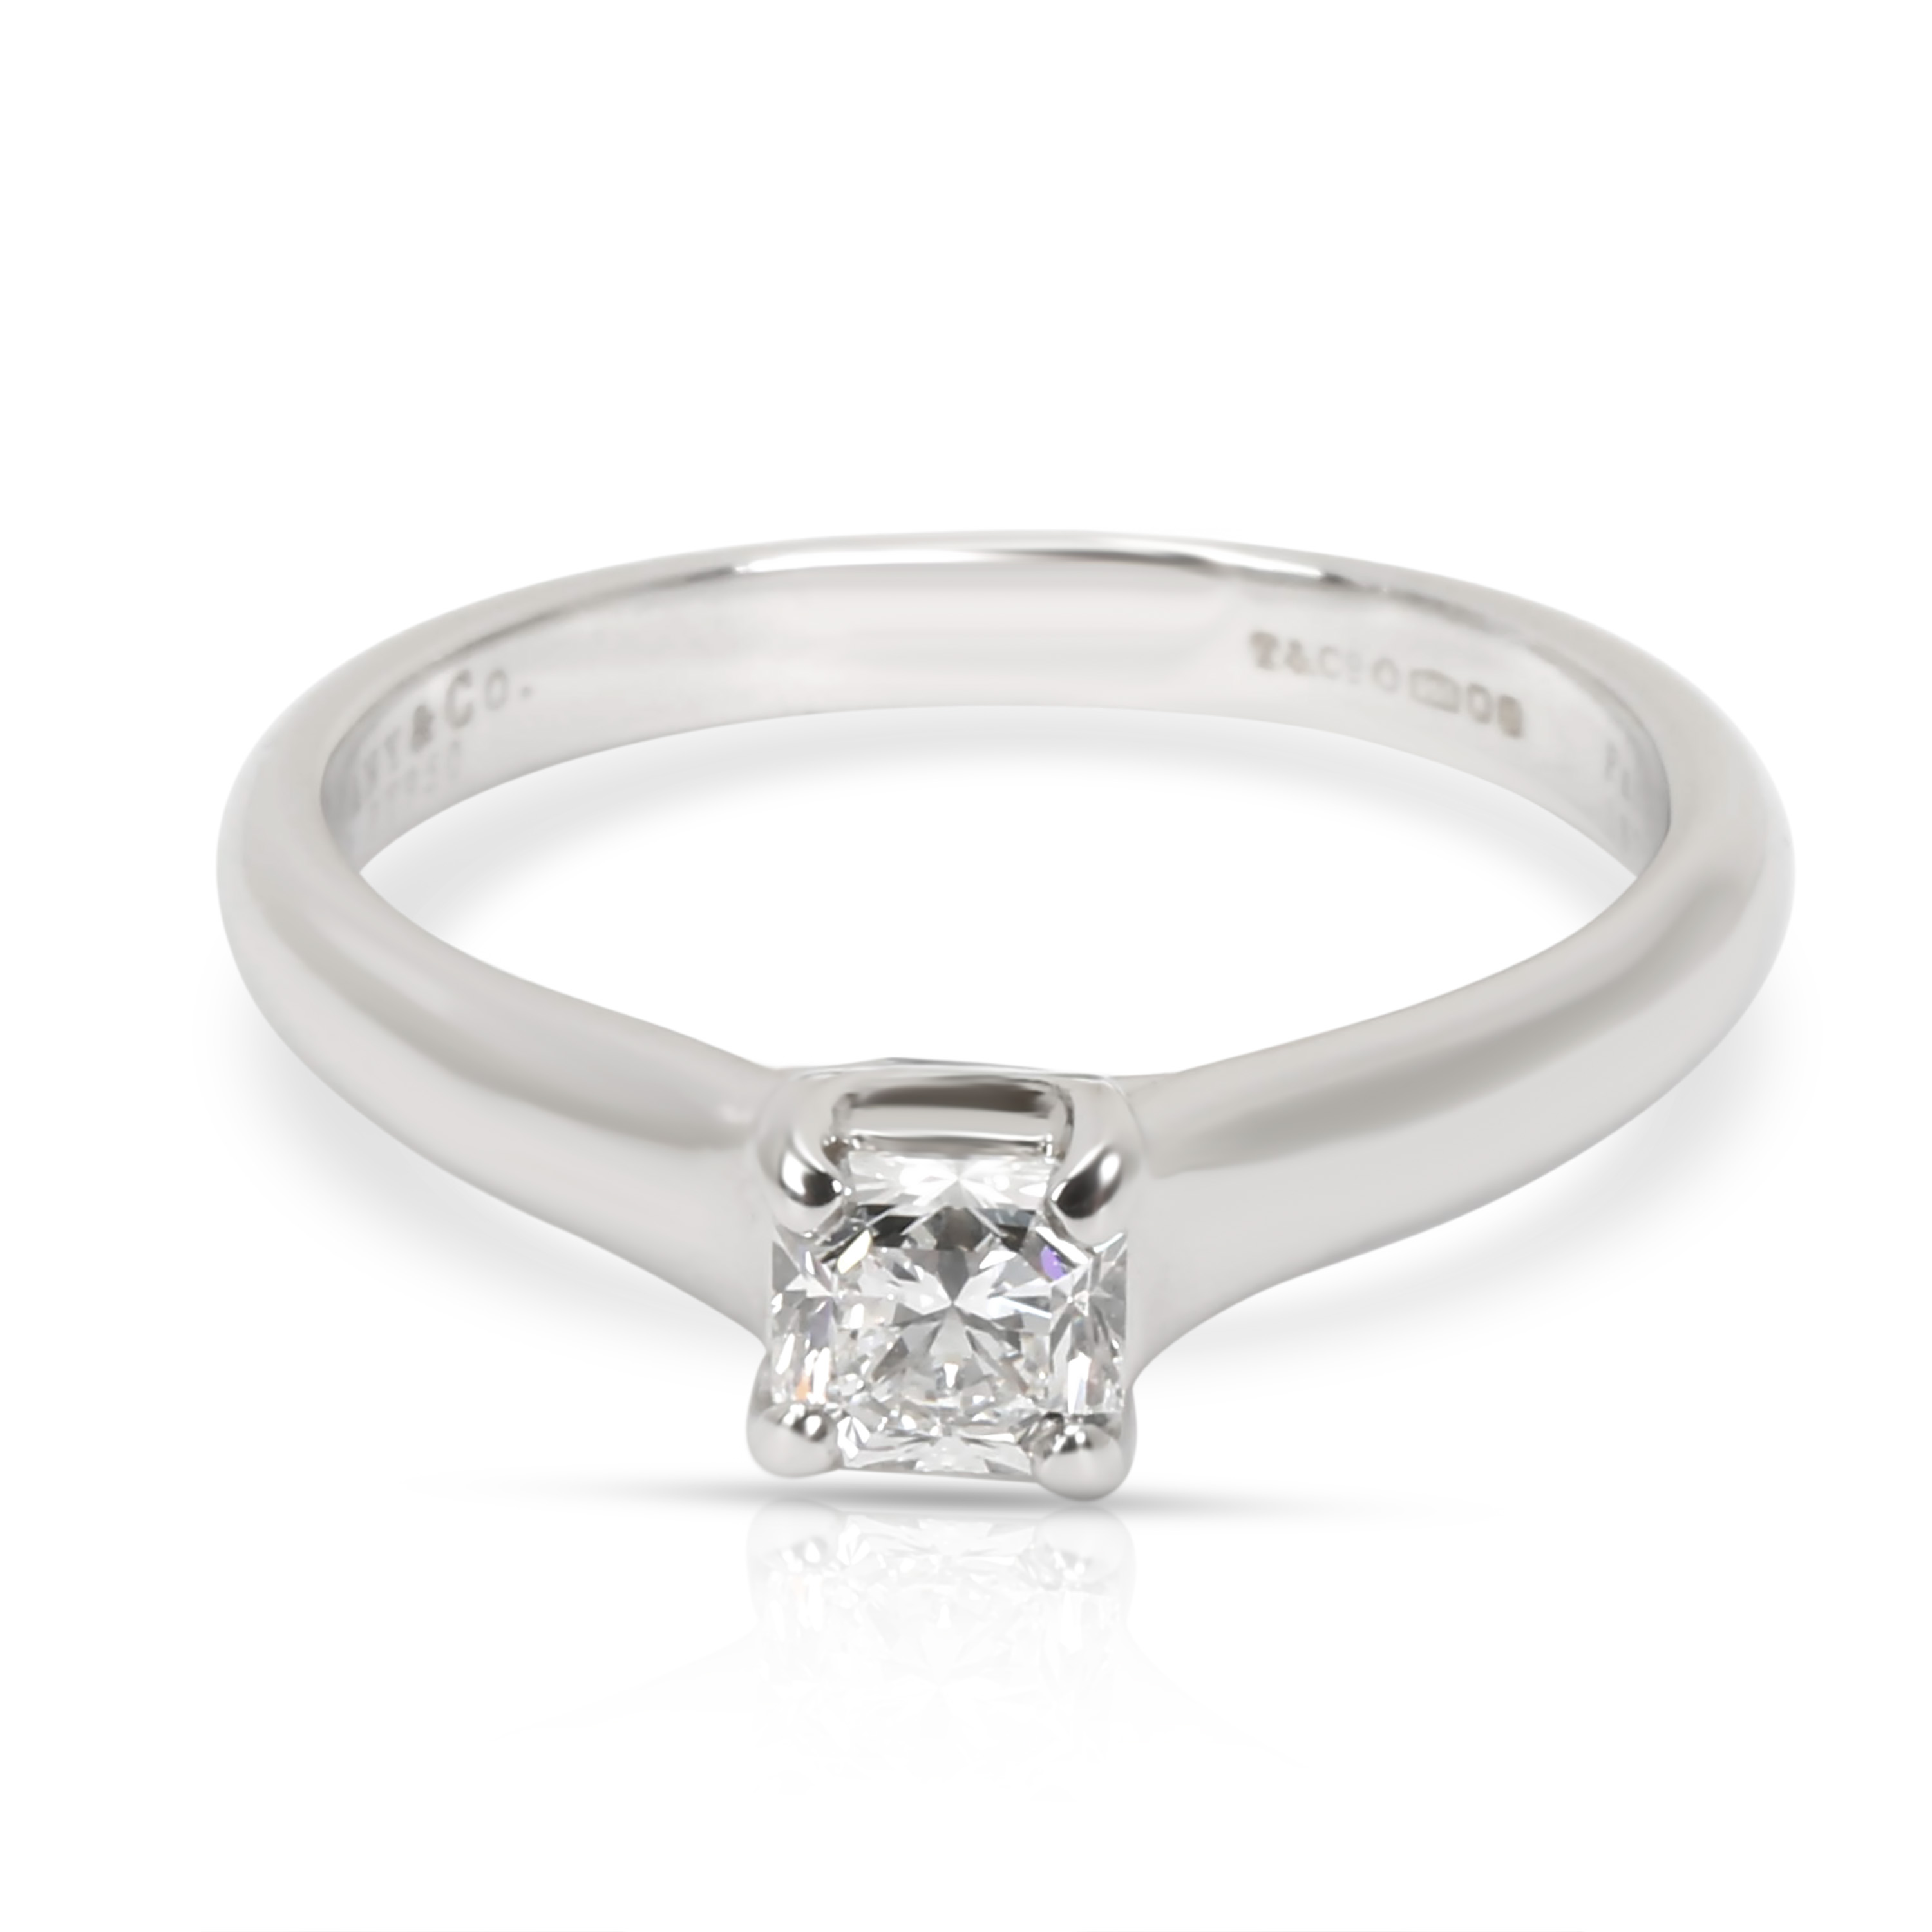 04e9a92f510eb How Expensive are Tiffany Engagement Rings? – Gemma by WP Diamonds